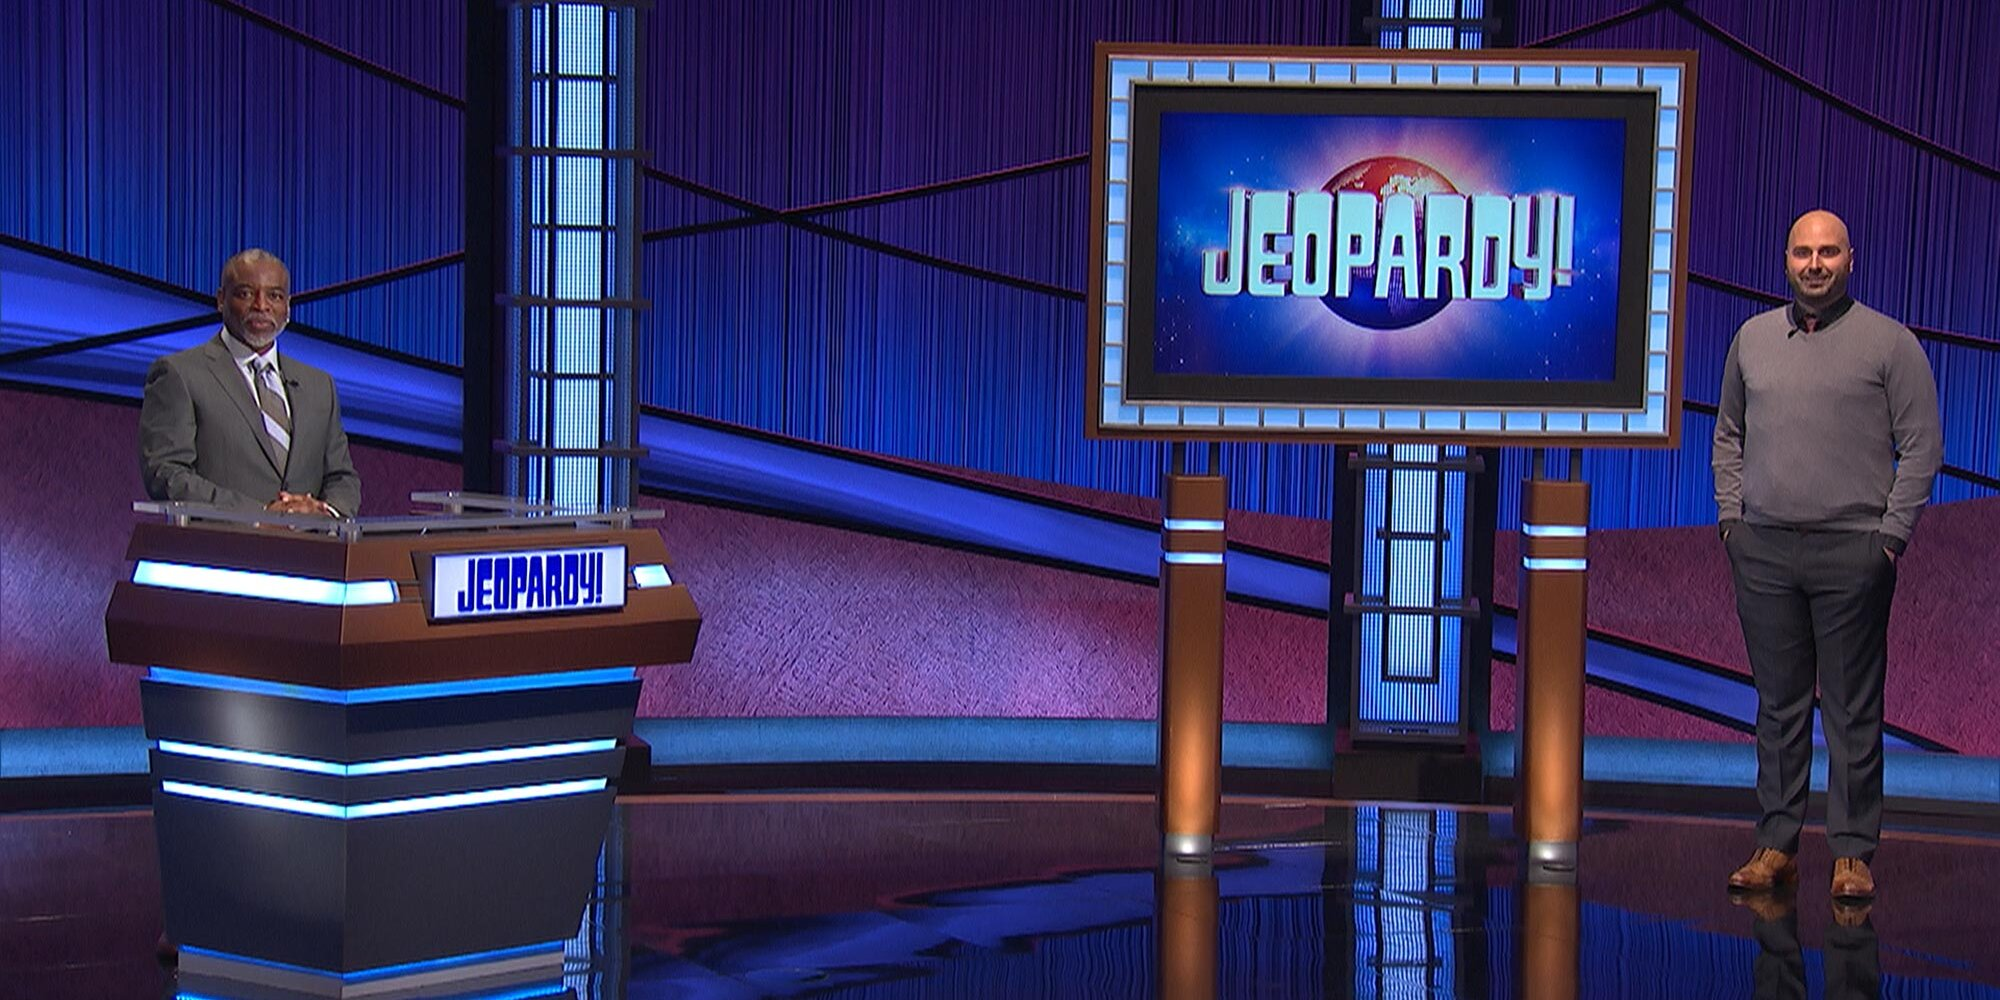 'Jeopardy' contestant hits new record for lowest score ever as LeVar Burton makes his debut - Entertainment Weekly News